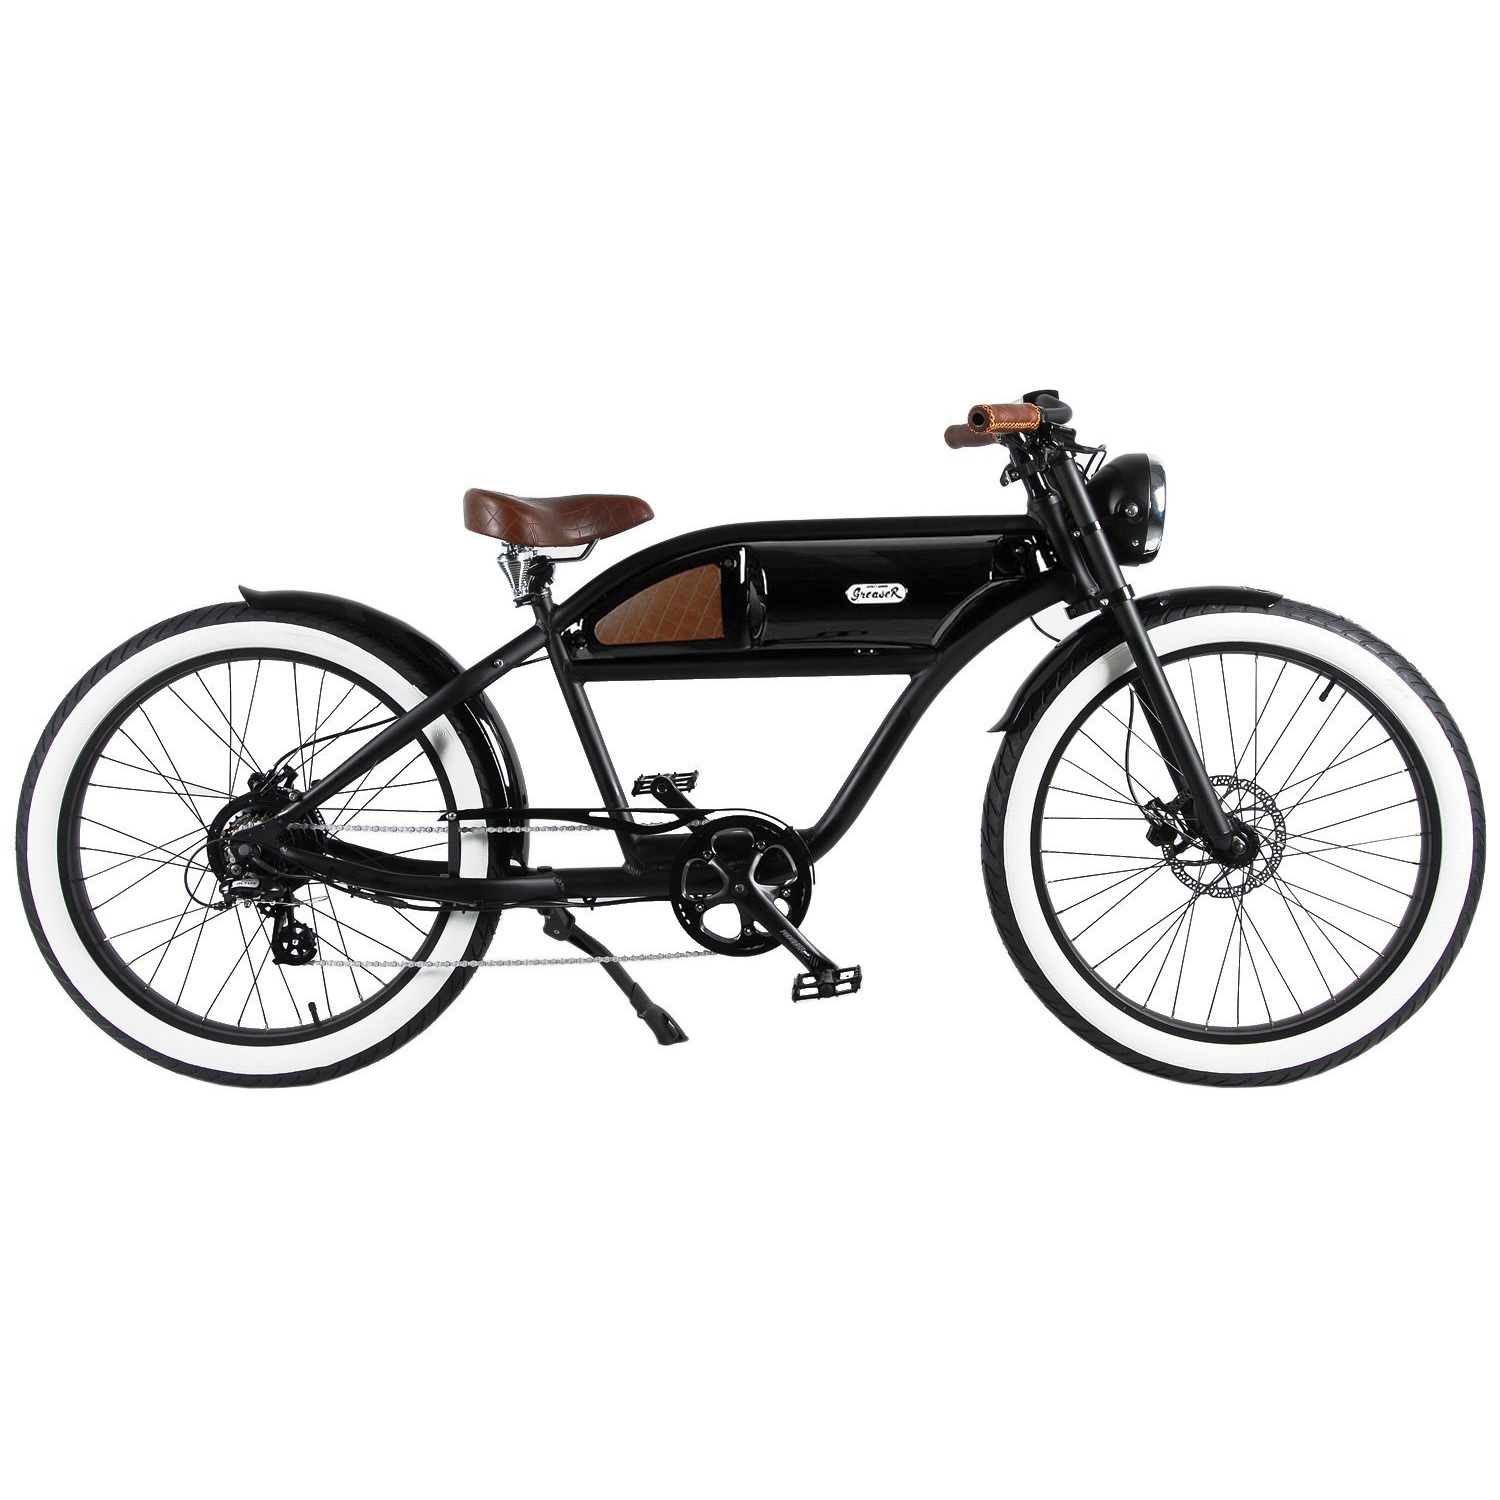 T4B - GREASER BOARD TRACK STYLE ELECTRIC BICYCLE - 36V, 250W